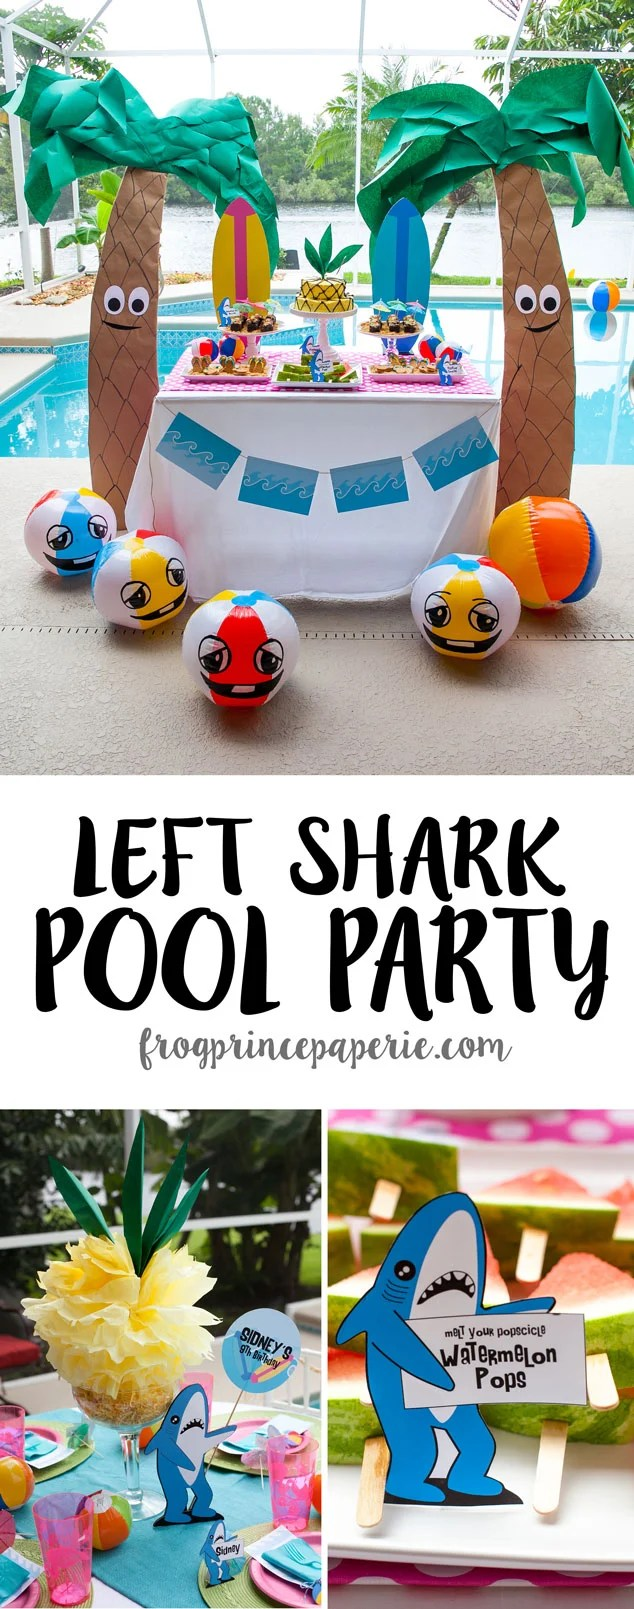 Lovable Getting Ready Need Some Howabout A Few Left Shark Party Ideas On A Budget Frog Prince Paperie Party Ideas Birthday Party Ideas 14 Year S Summer Parties ideas Pool Party Ideas